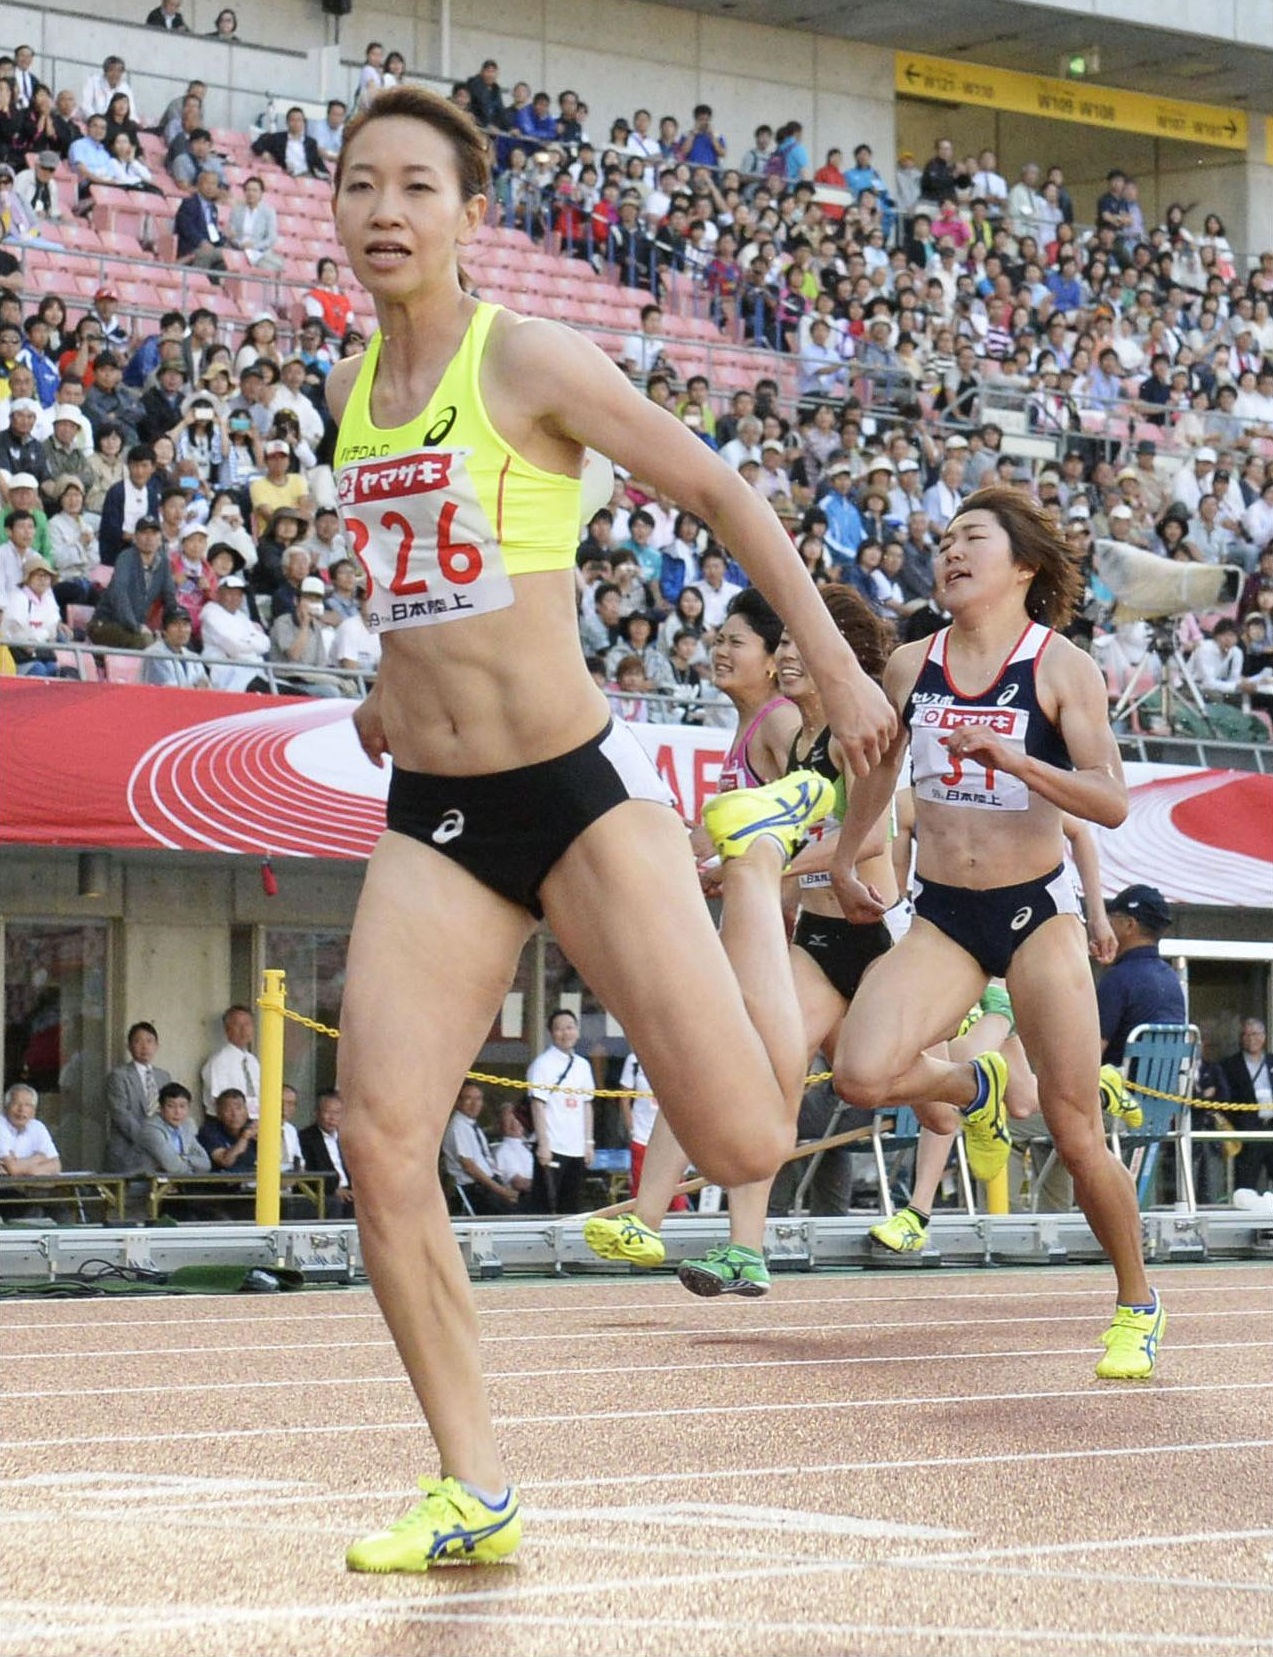 Sprinter Fukushima captures fifth straight 200-meter national title | The Japan Times